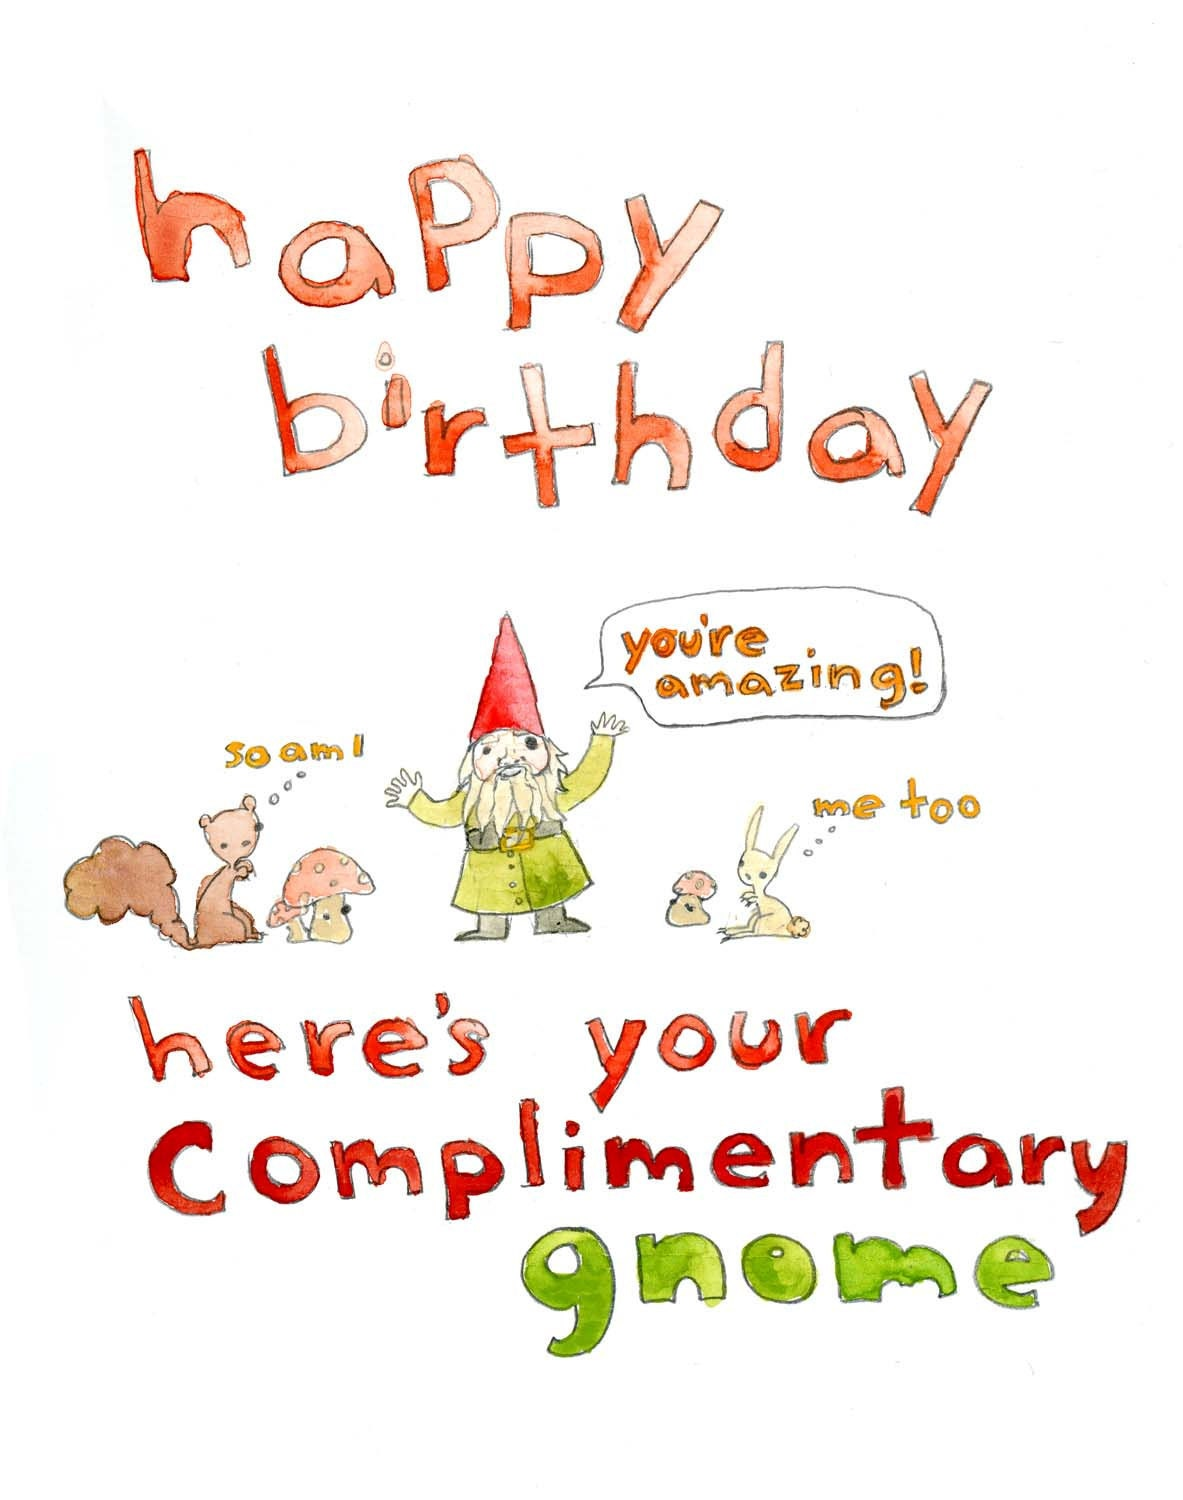 Happy Birthday Complimentary Gnome greeting card by echarrow